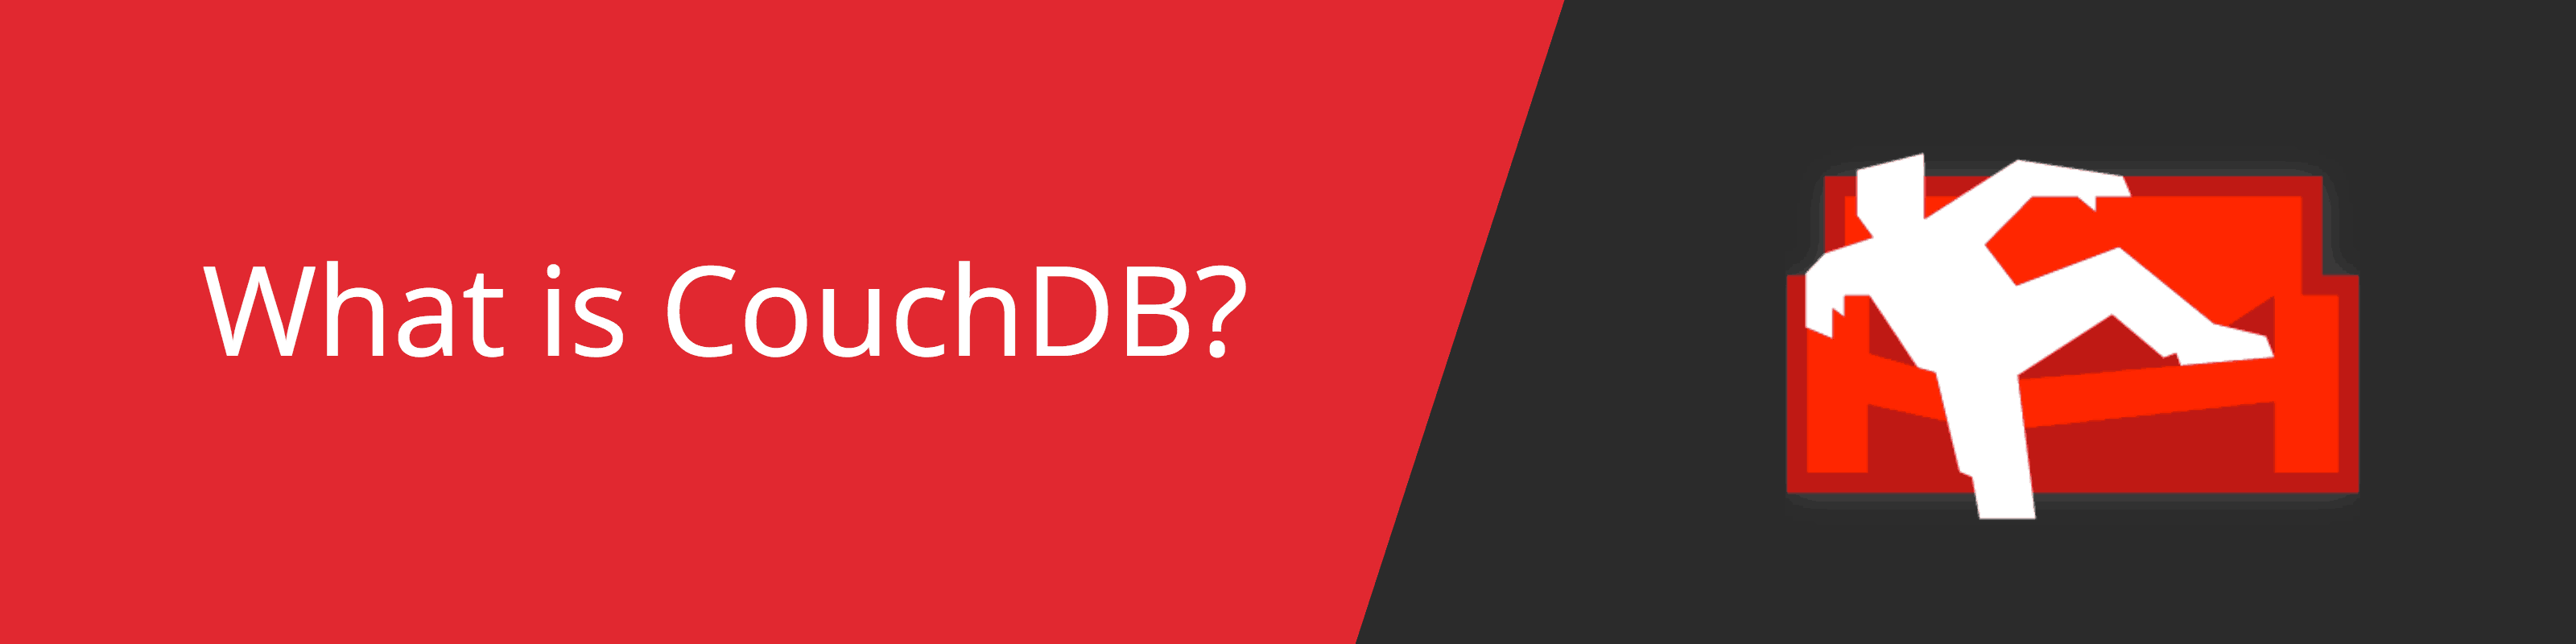 what is couchdb